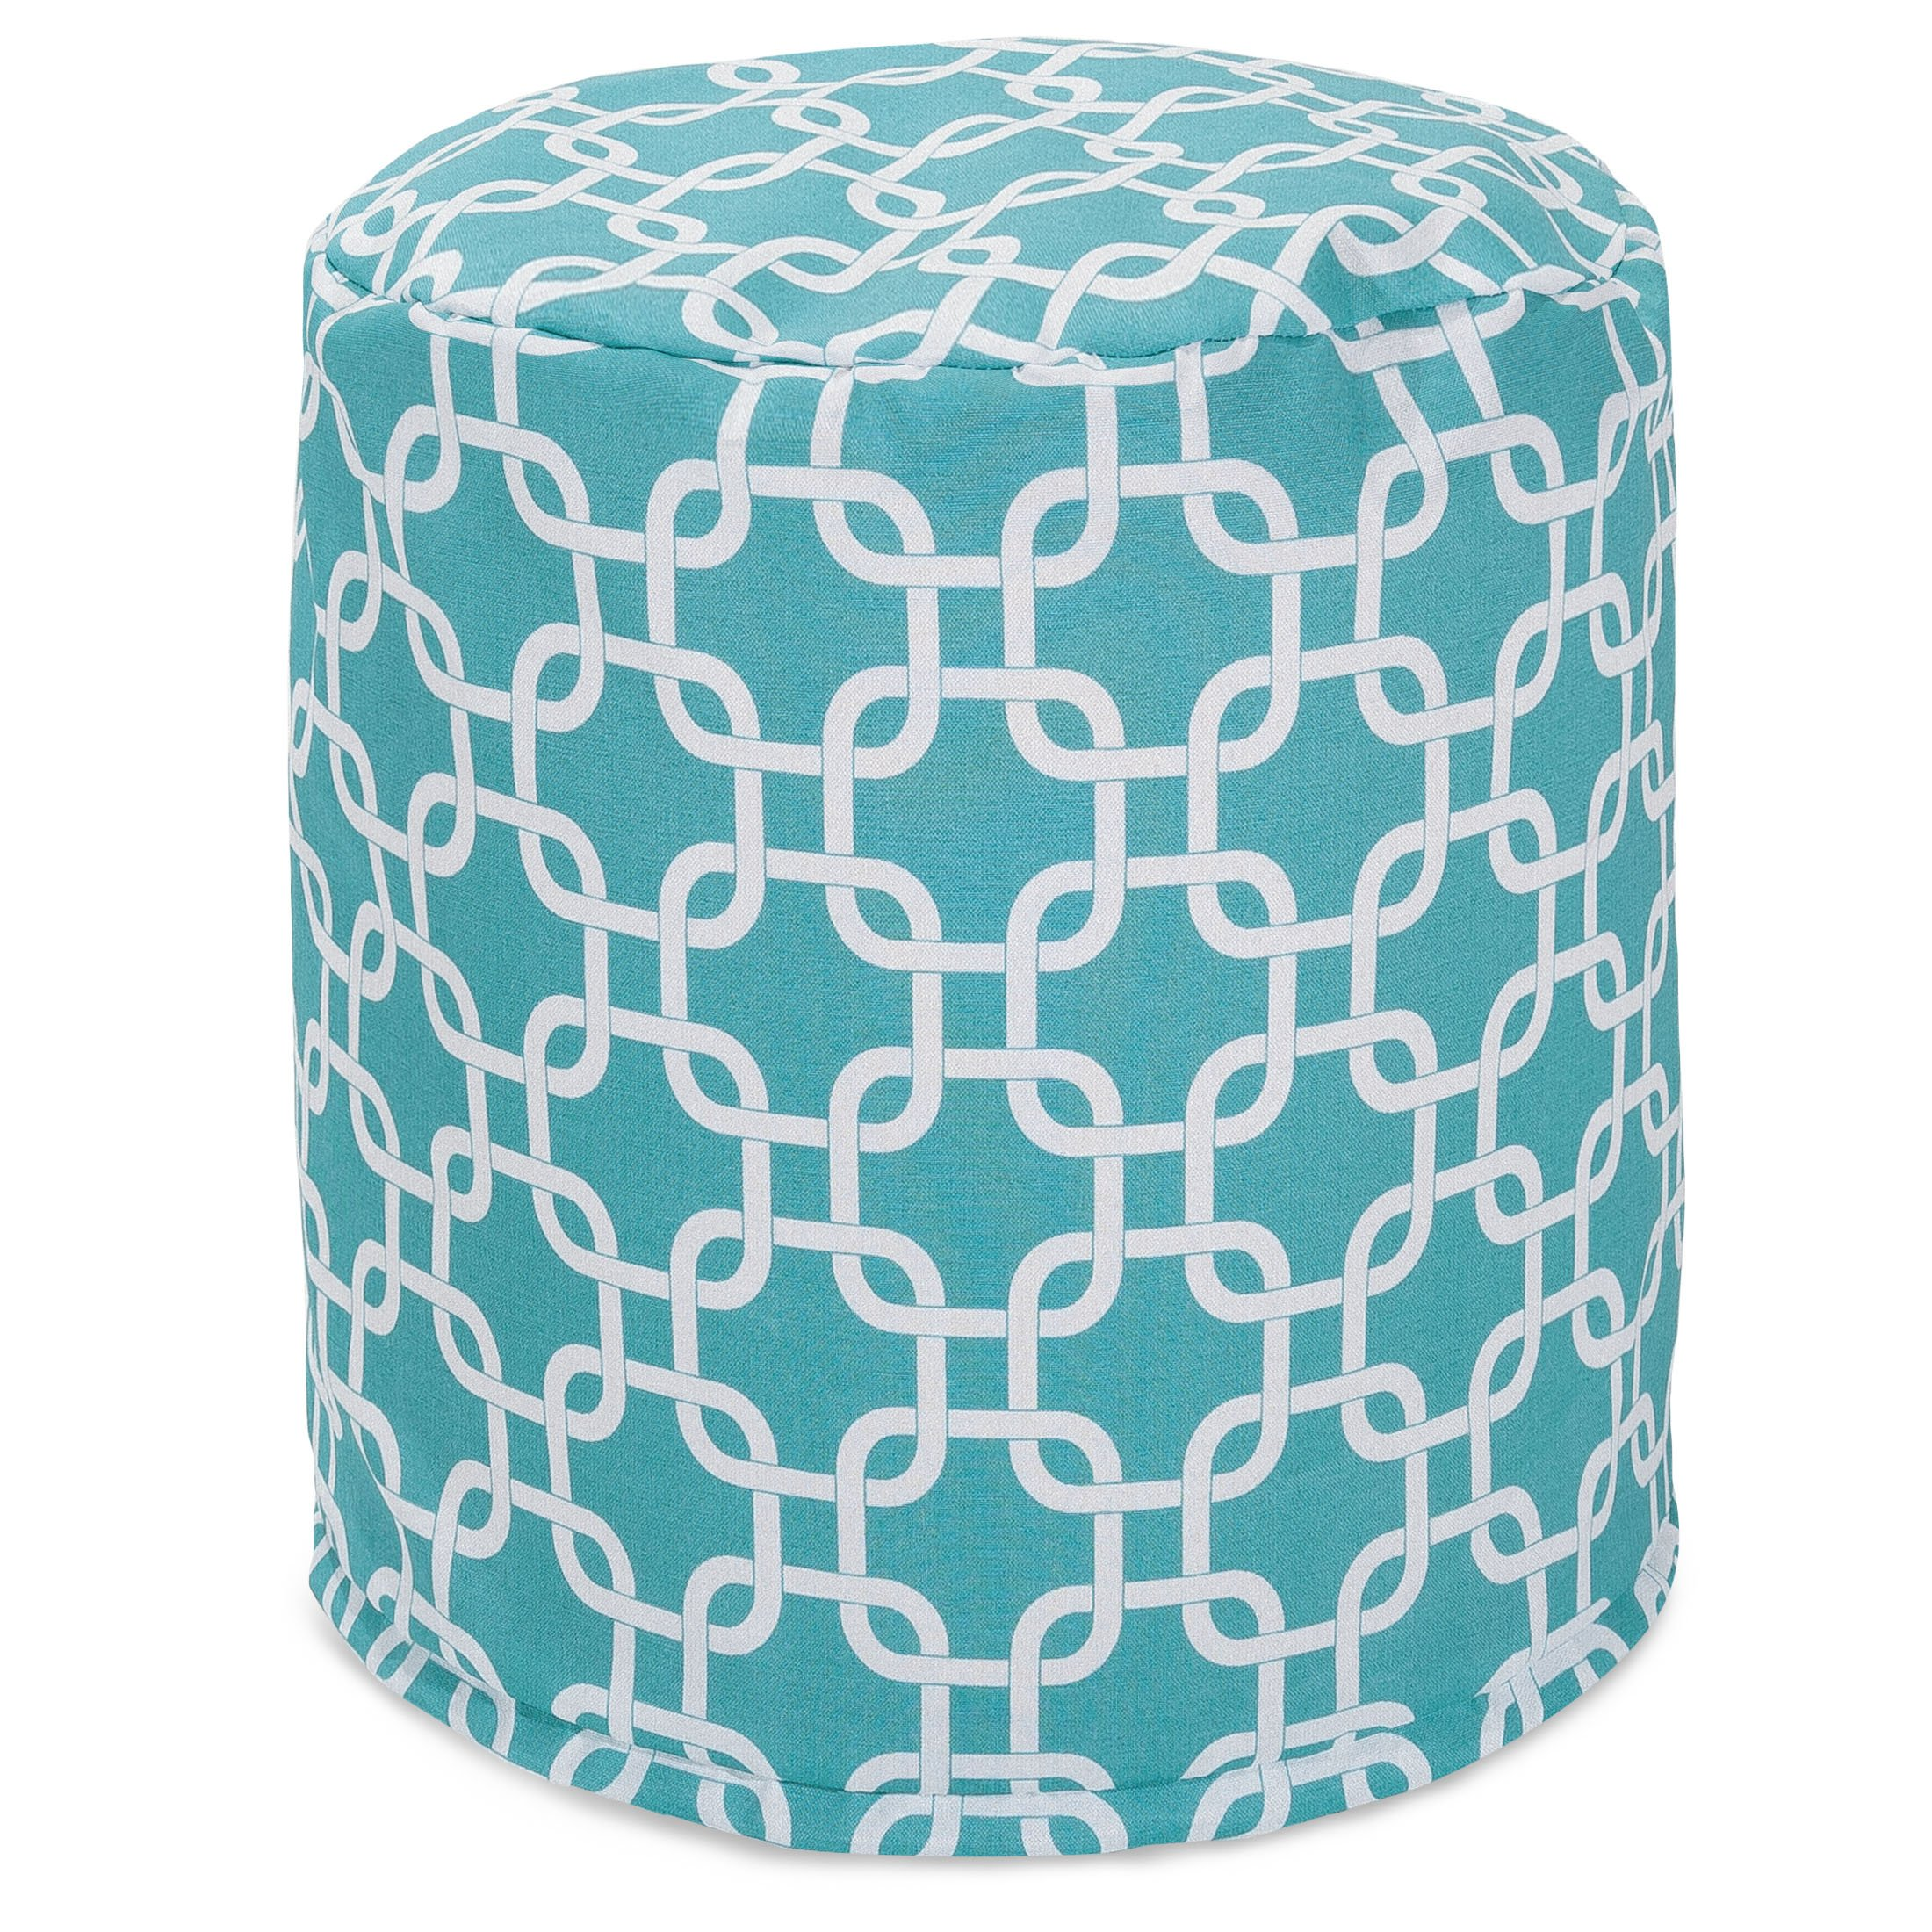 Majestic Home Goods Teal Links Indoor/Outdoor Large Pillow 16'' L x 16'' W x 17'' H